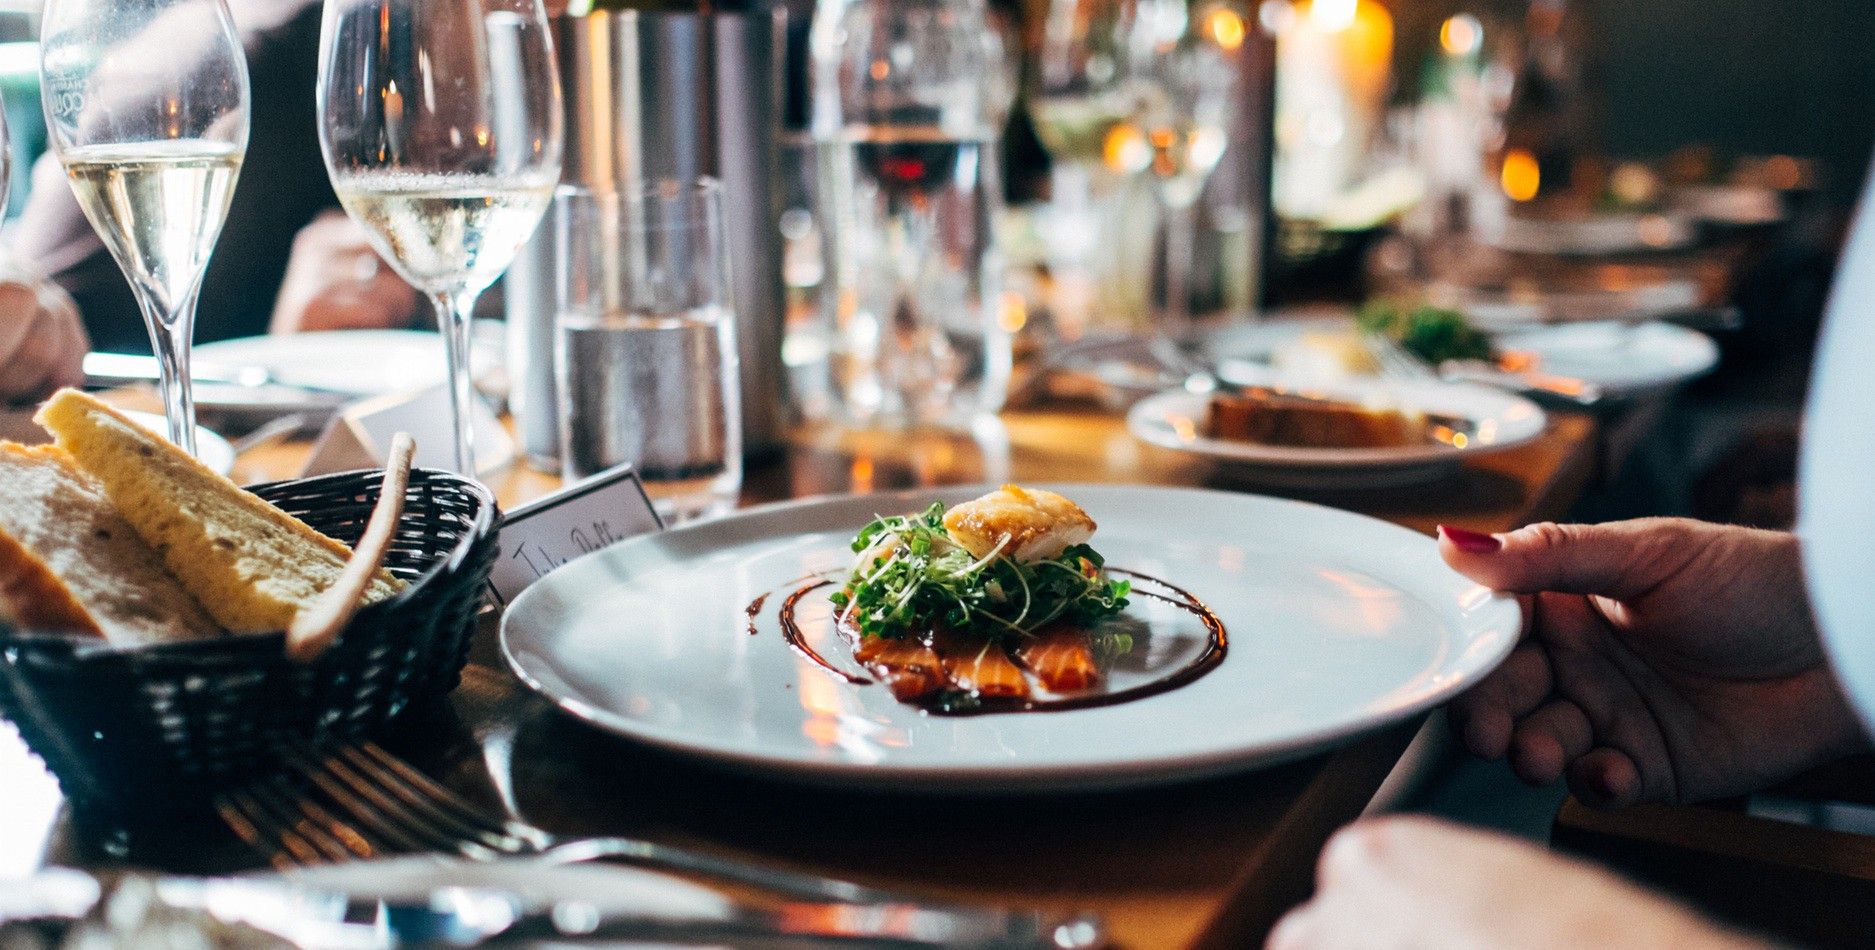 The Restaurant Design Trends You Need to Meet! 4 restaurant design trends The Restaurant Design Trends You Need to Meet! The Restaurant Design Trends You Need to Meet 4